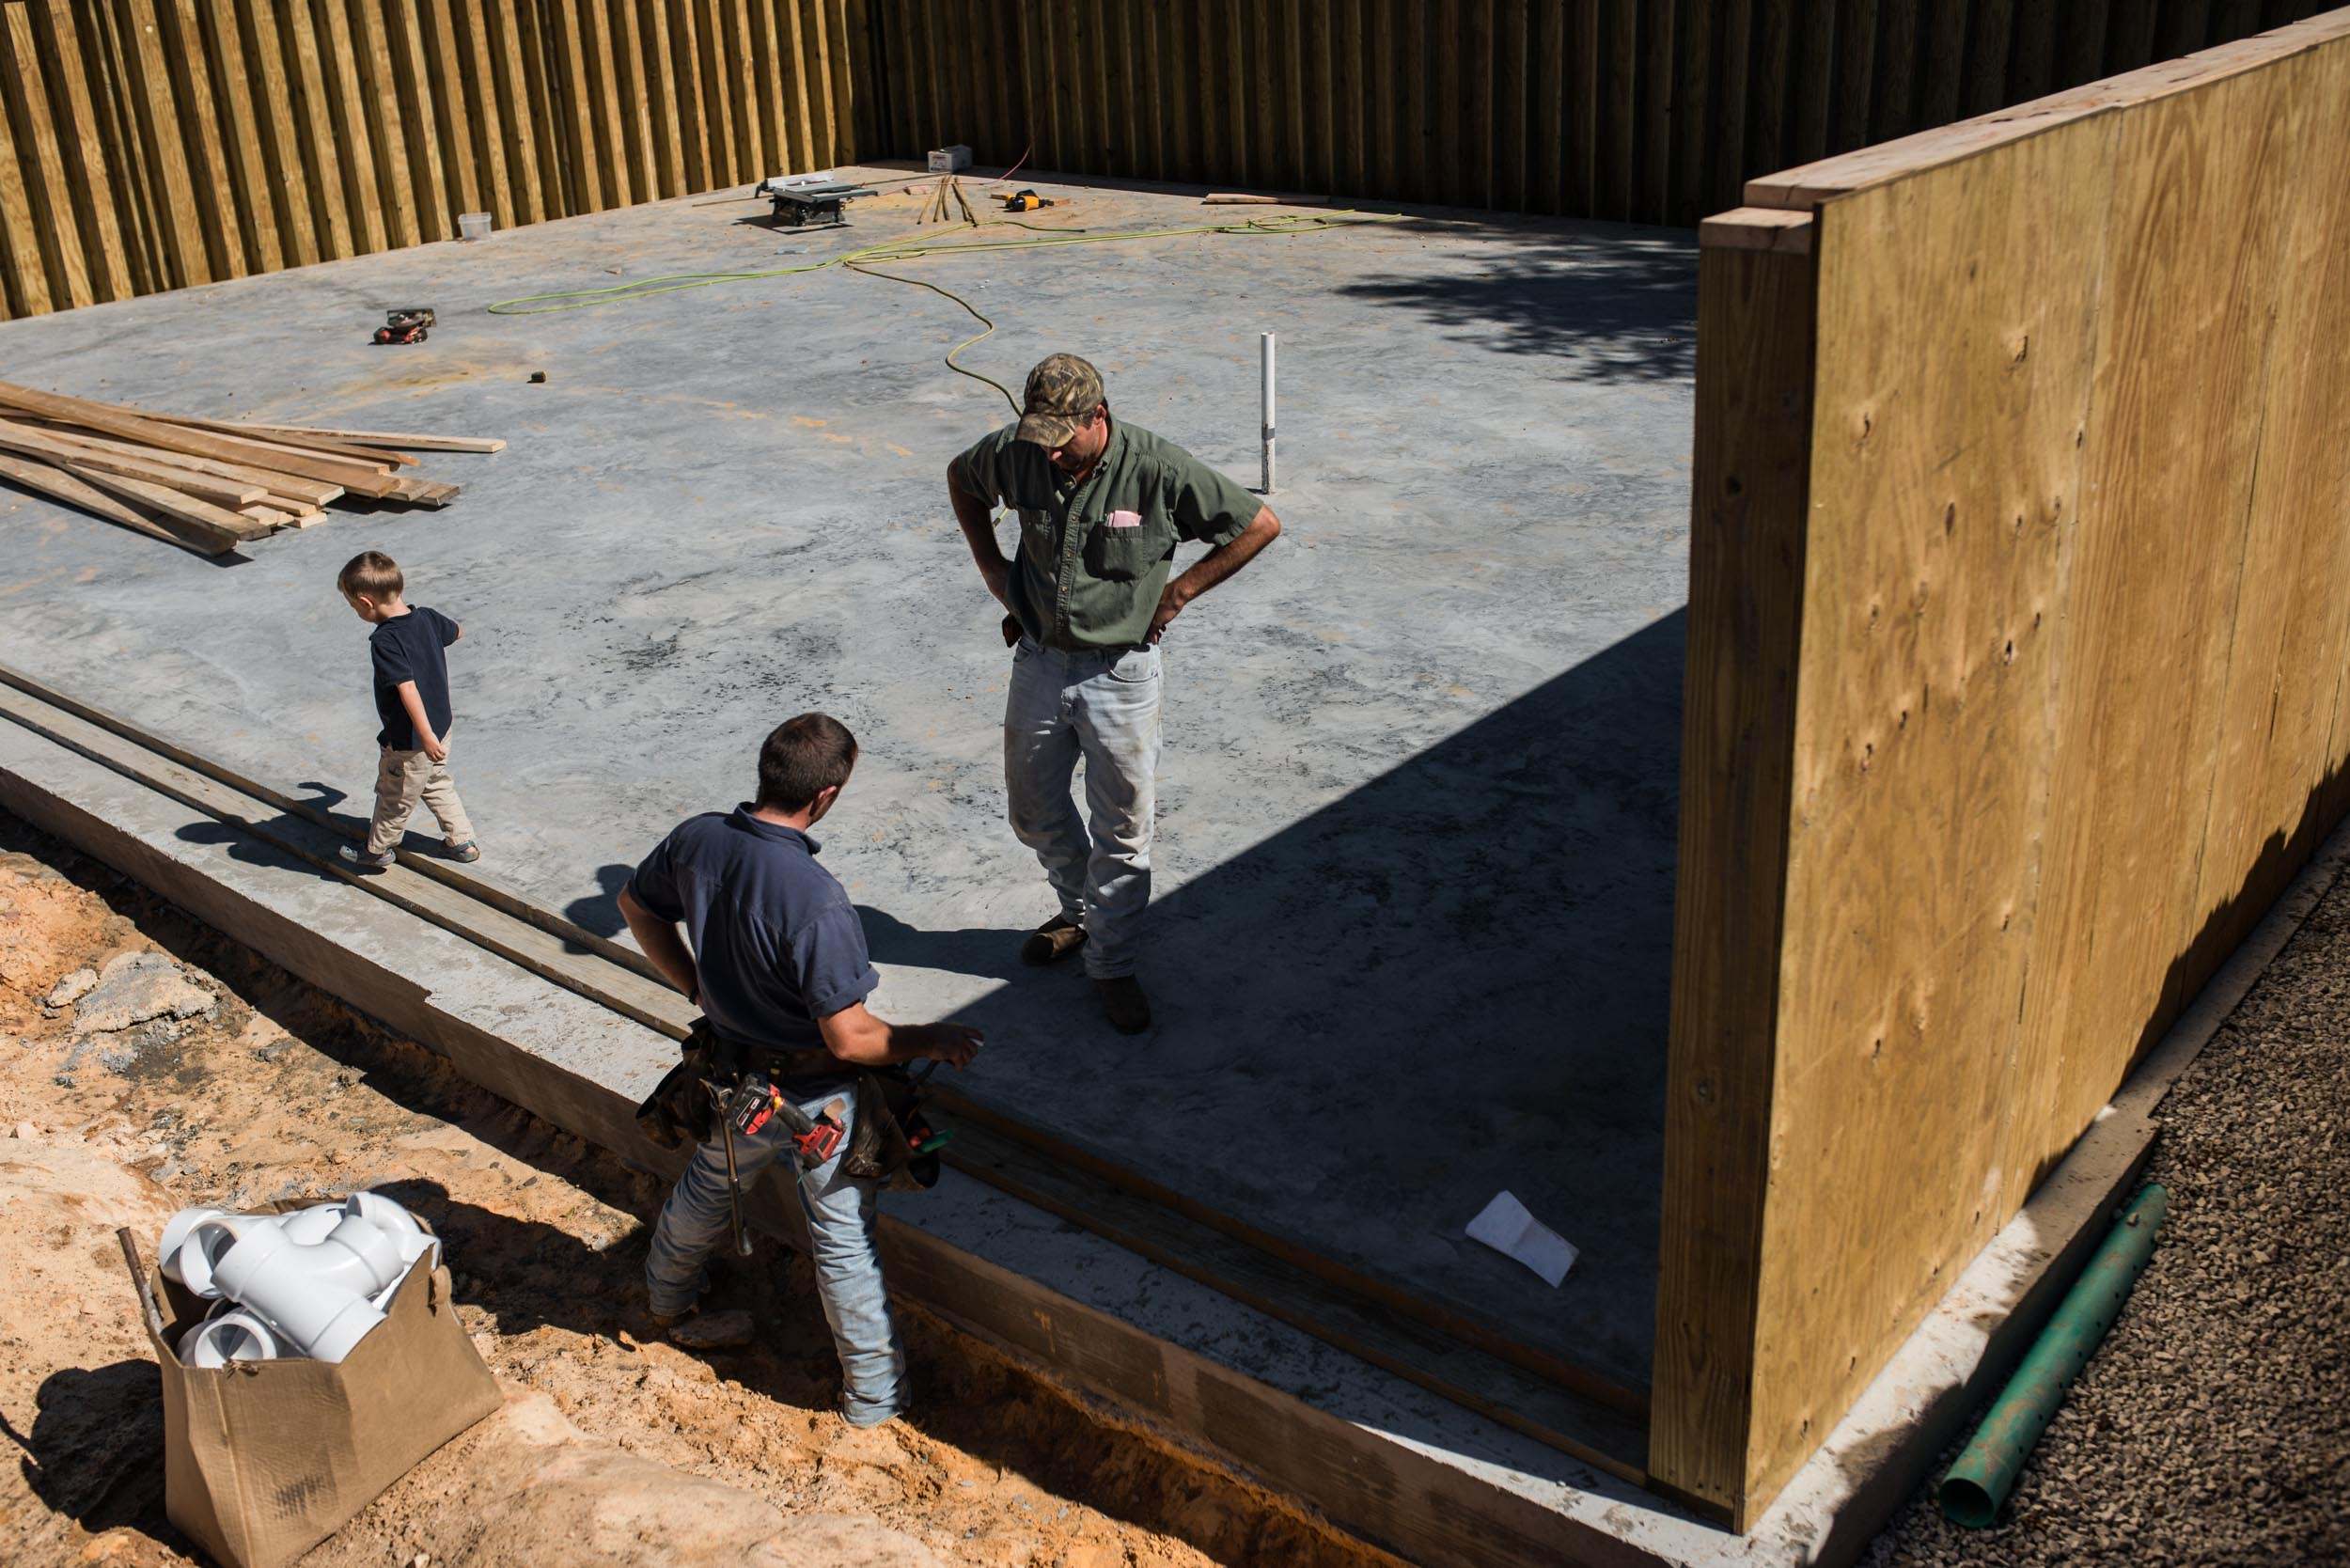 Framing is underway on the basement of their farm home. Nathan receives extra help from his brother David Mast, who sometimes brings several helping hands with him from the Nathan's former community in Summersville.